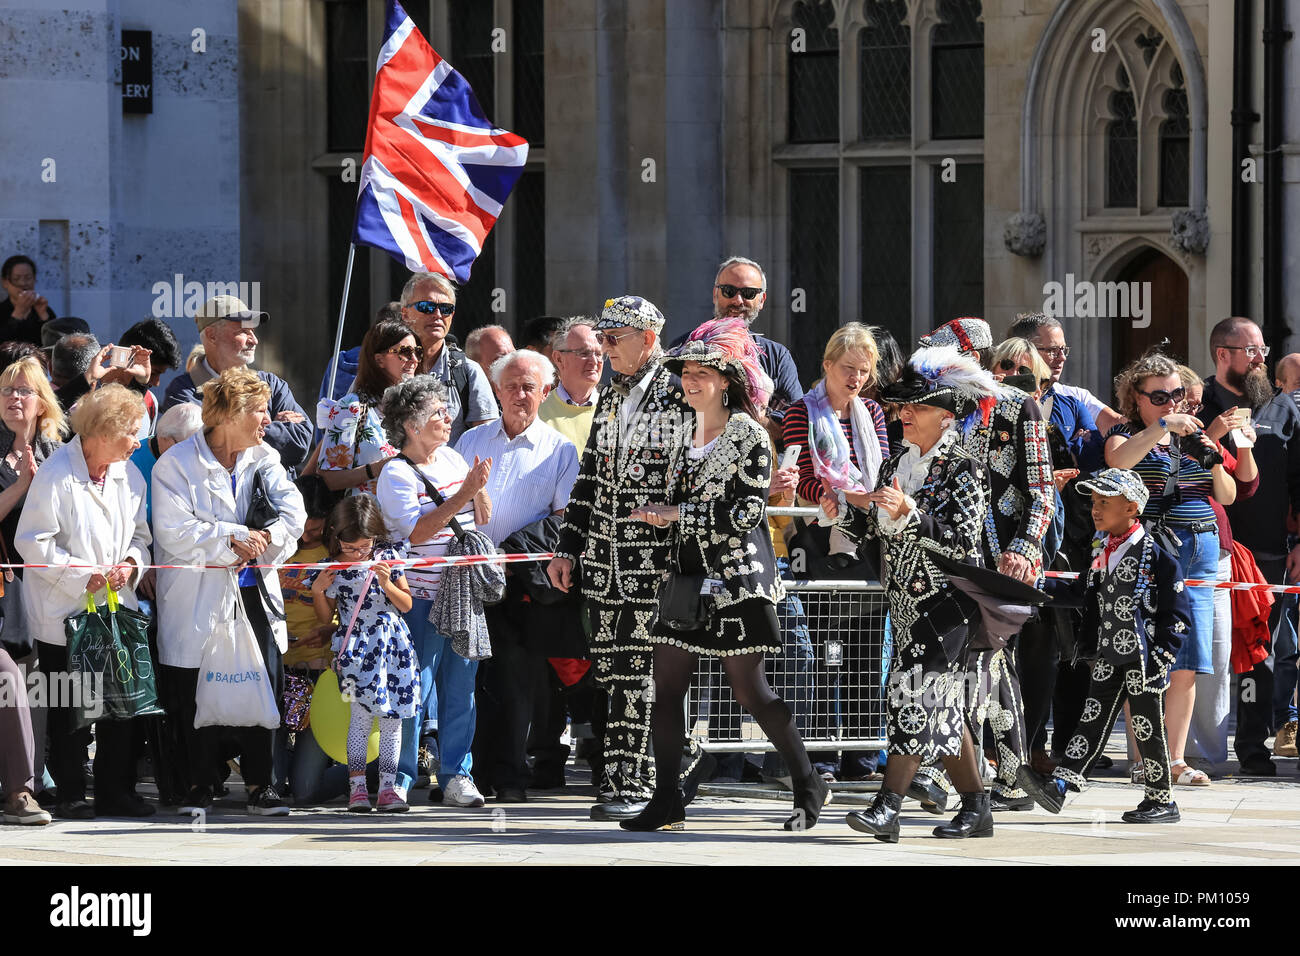 Guildhall Yard, London, UK,16th Sep 2018. The 20th anniversary of the annual Pearly Kings and Queens Harvest Festival sees the pearlies in their traditional pearl button covered suits and dresses celebrating with Morris dancing, maypole dancing, the Mayors of London and marching bands at Guildhall Yard, before parading through the City of London to St Mary Le Bow Church for a service of thanksgiving. Credit: Imageplotter News and Sports/Alamy Live News - Stock Image